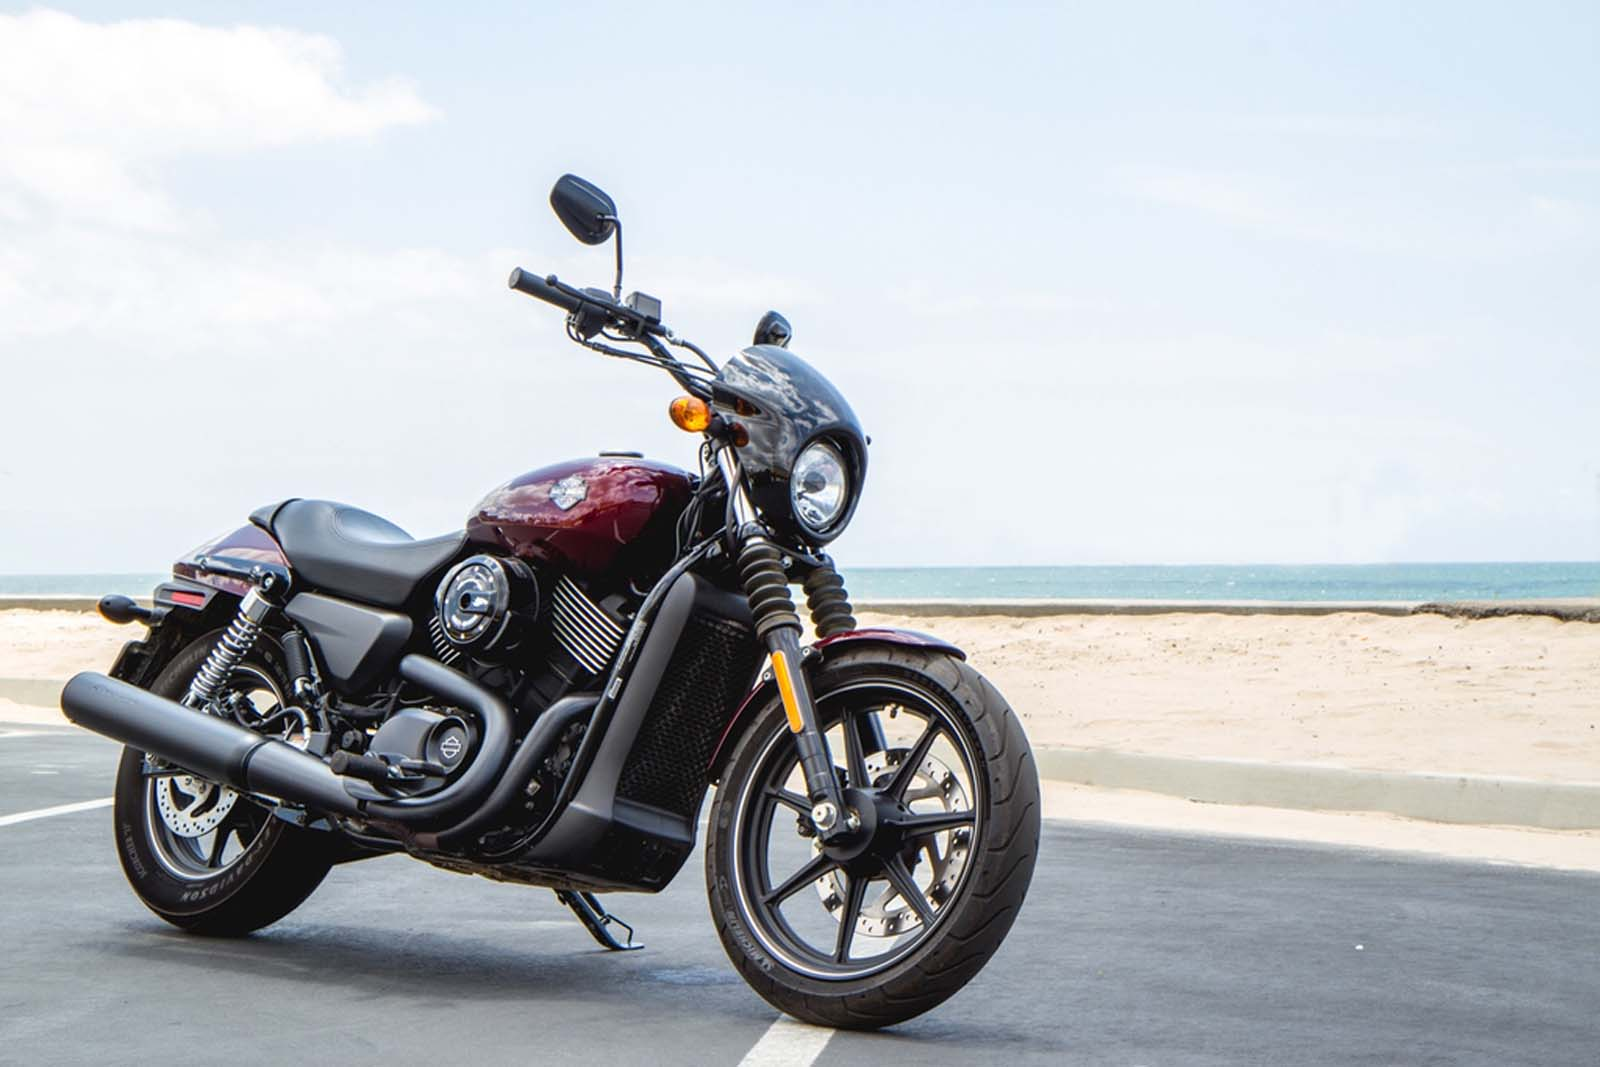 Riding Harley Davidson S New Street 750 In Socal Video